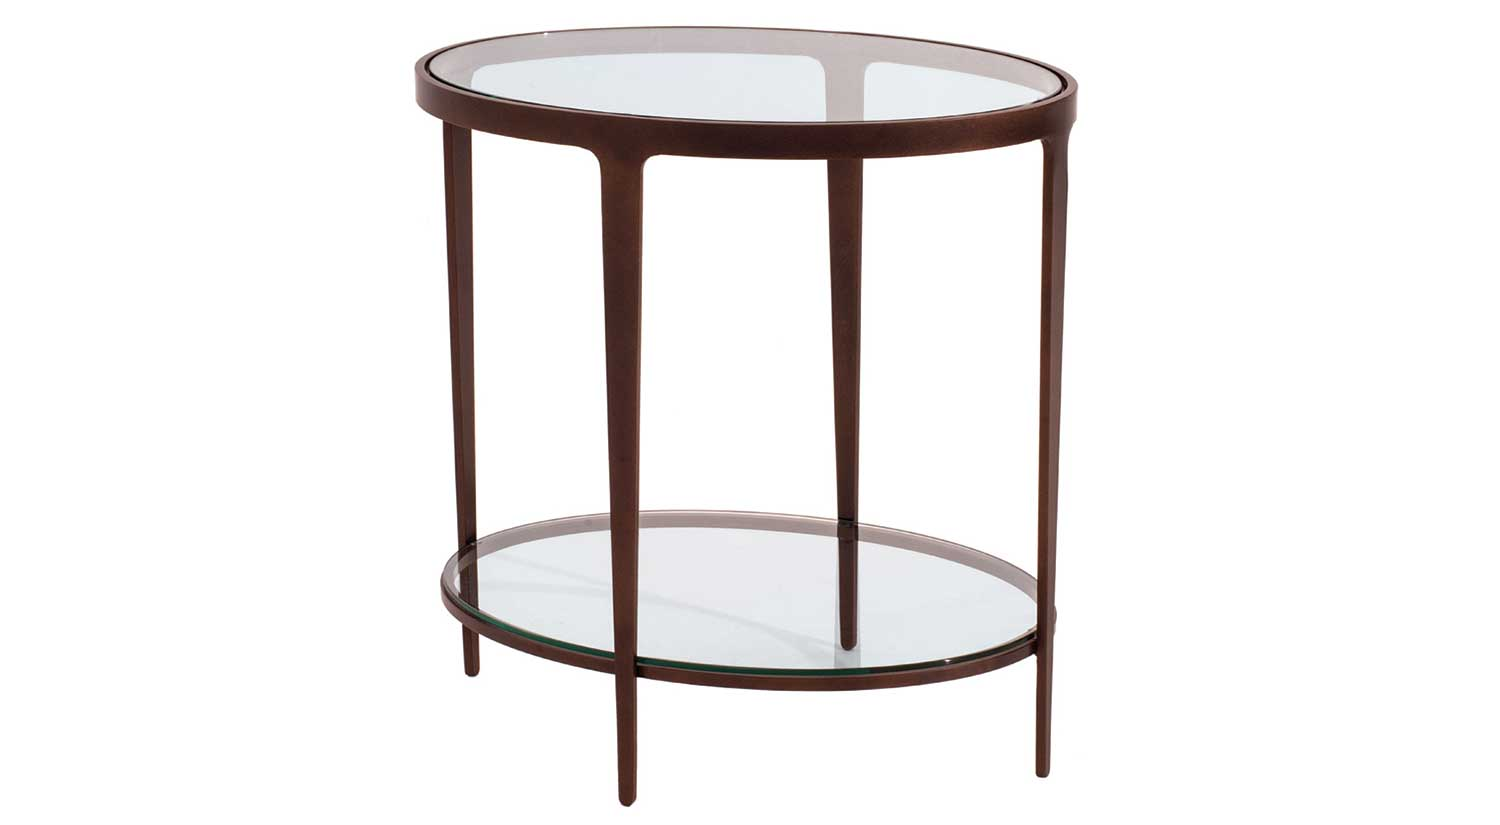 circle furniture ellipse end table designer accent tables bronze living dining area round coffee legs foyer narrow side cover cement modern outdoor storage chest rustic pine patio